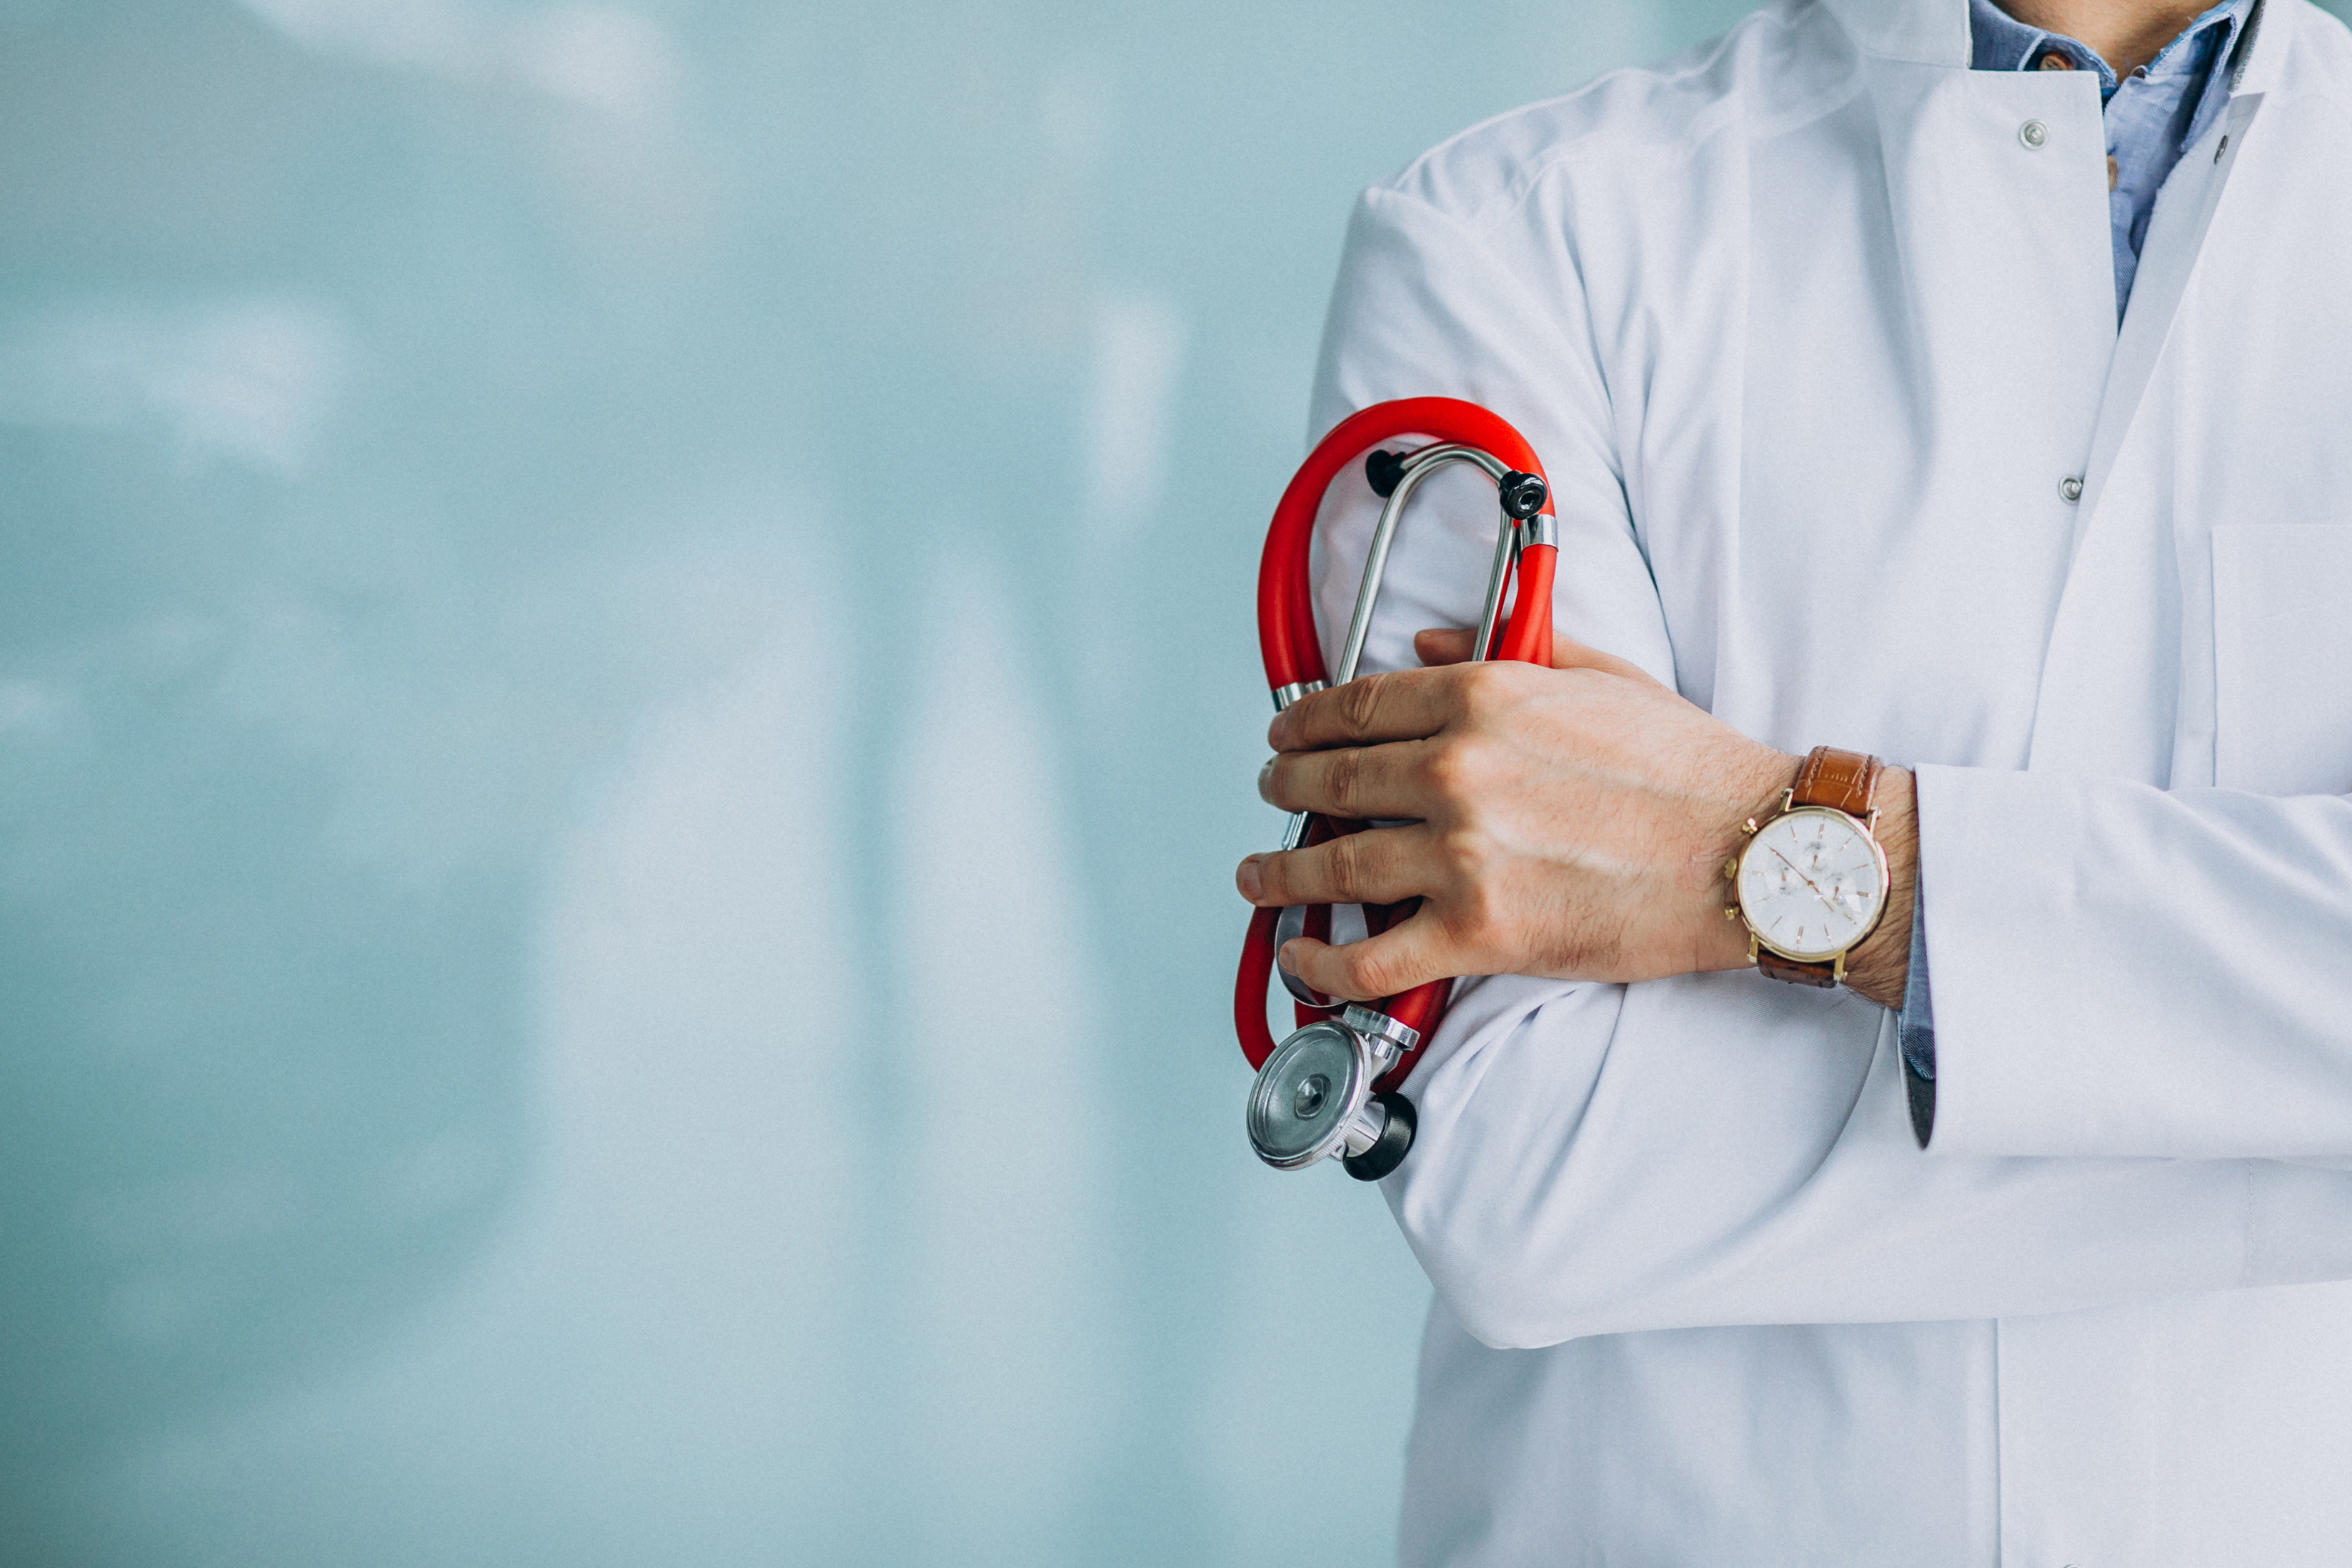 young-handsome-physician-medical-robe-with-stethoscope